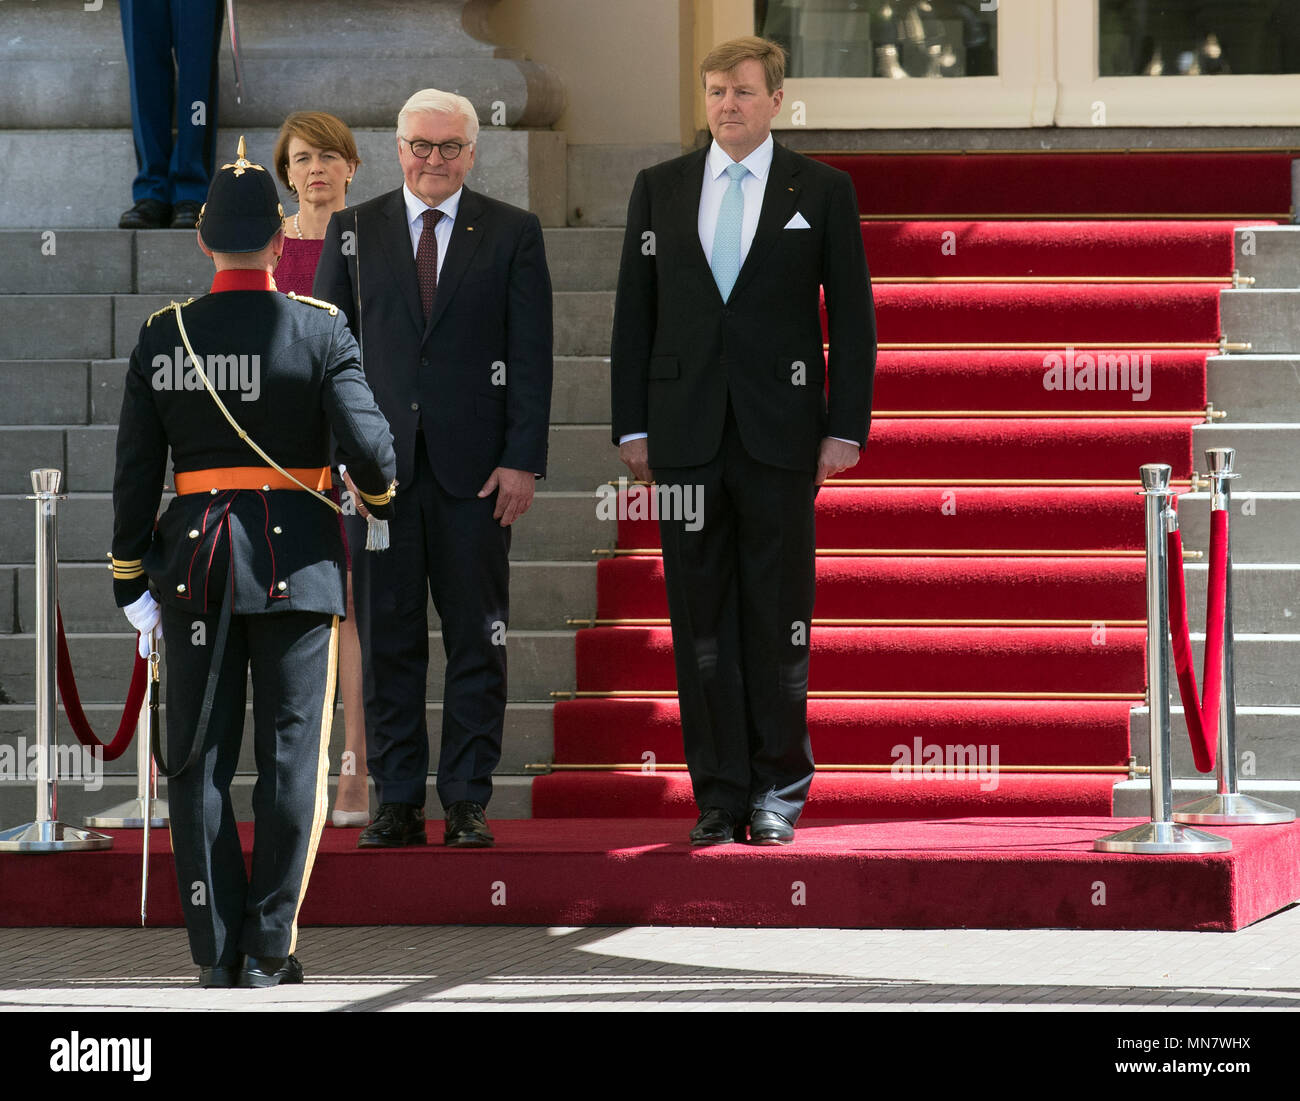 Amsterdam, The Netherlands. 15th May, 2018. German President Frank-Walter Steinmeier (C) is greeted with miliary honours by the King of the Netherlands, King Willem-Alexander, in the Palace Gardens. The wife of the President, Elke Buedenbender, is standing on the left. Photo: Soeren Stache/dpa Credit: dpa picture alliance/Alamy Live News Stock Photo